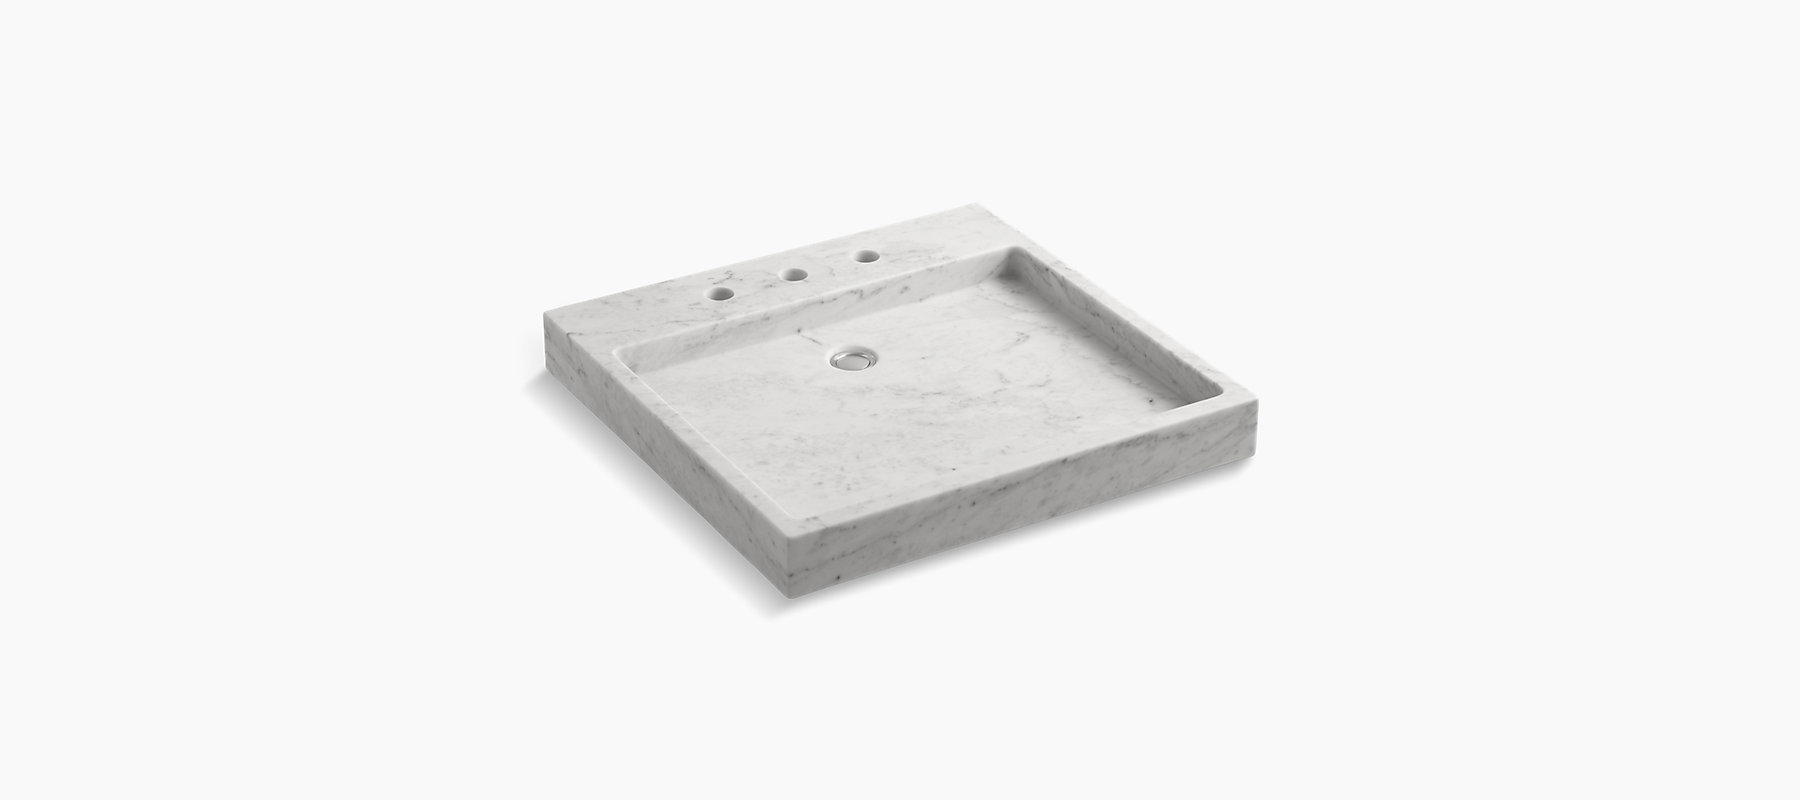 amazing marble countertop sink design and modern faucet.htm k 2335 8 purist countertop wading pool sink kohler  purist countertop wading pool sink